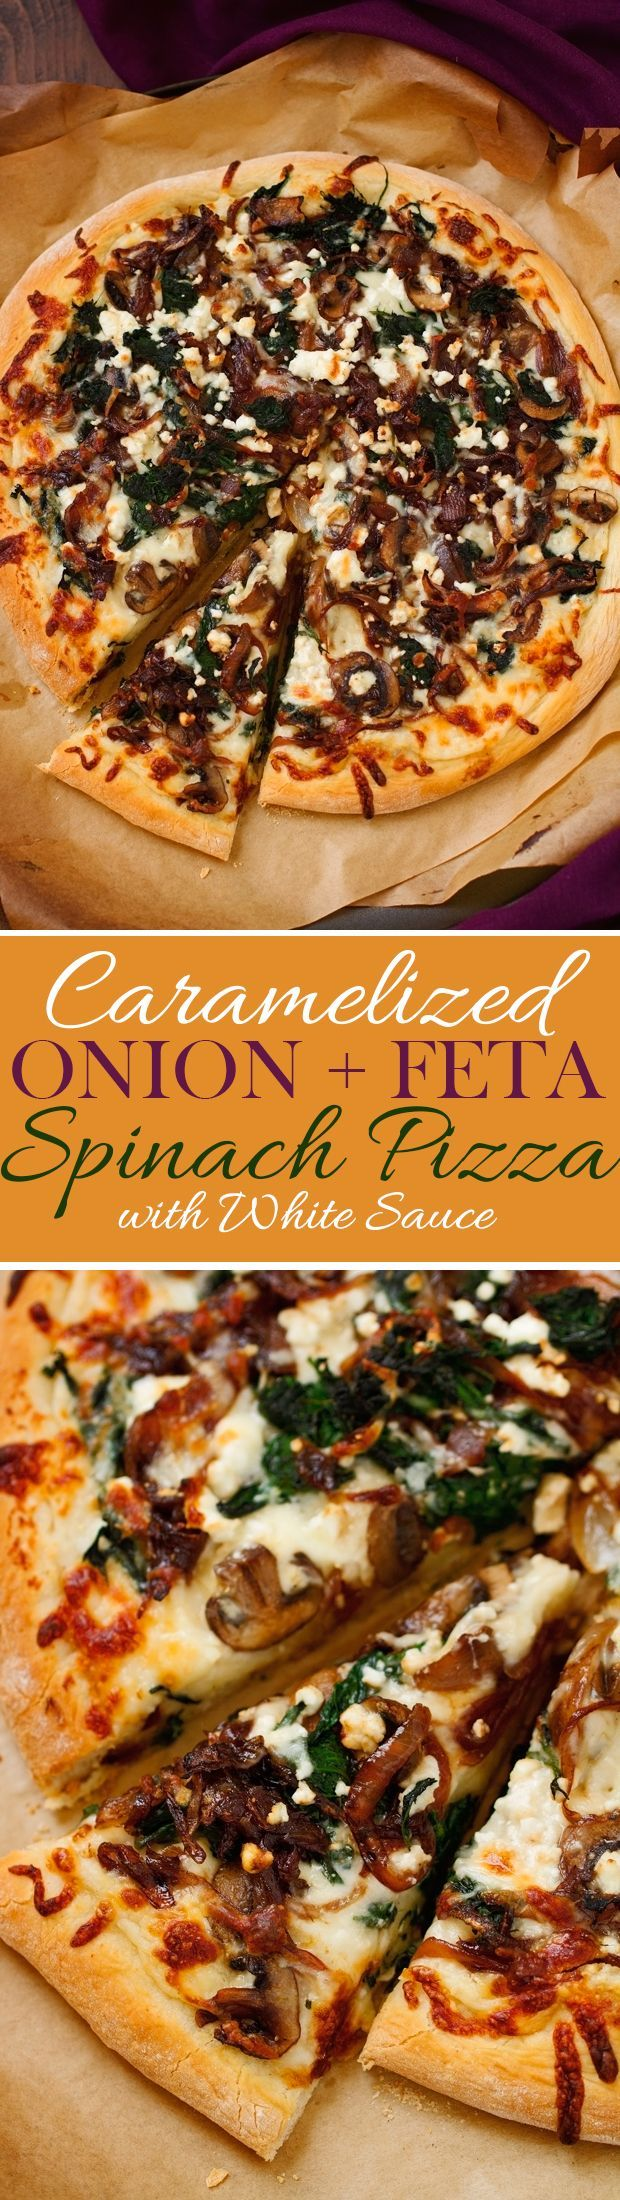 Caramelized Onion Feta Spinach Pizza with creamy white sauce! This pizza tastes like you ordered it at a fancy restaurant But it's simple to make at home!